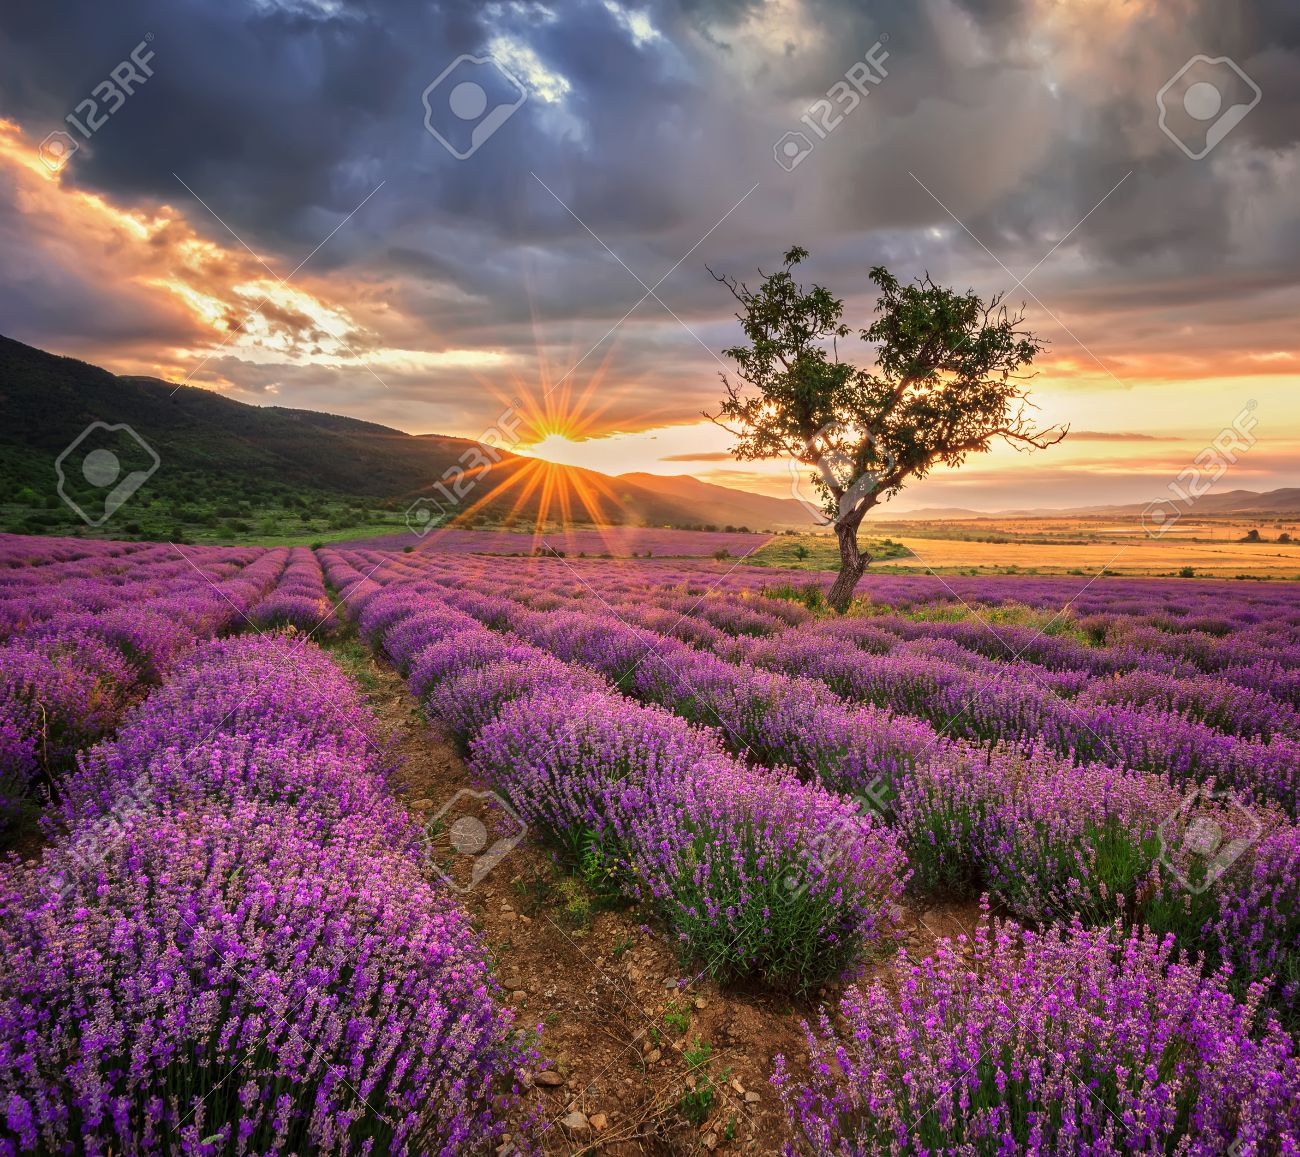 Stunning landscape with lavender field at sunrise - 44285506